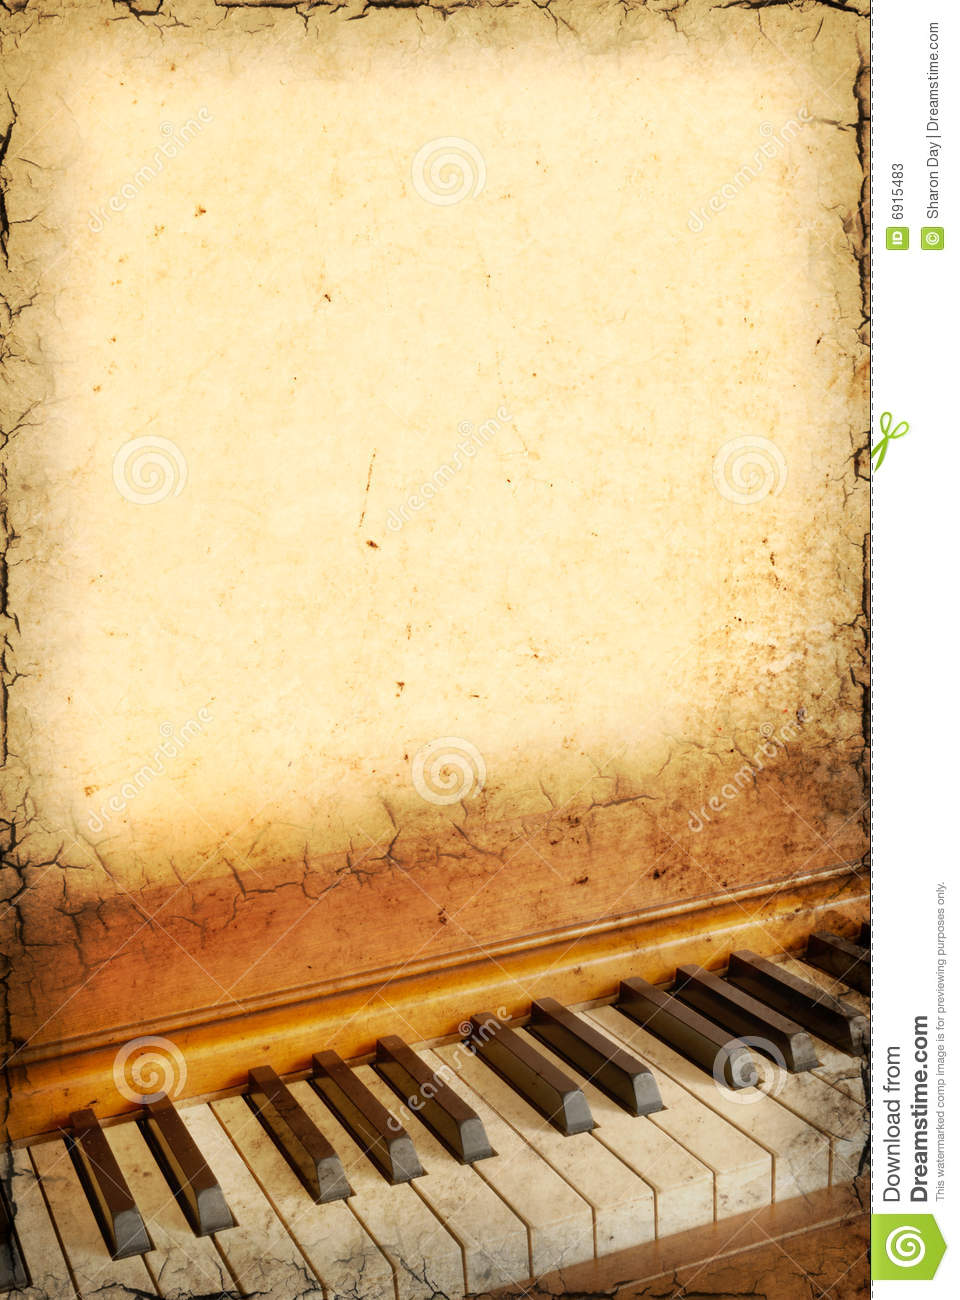 3d Text Wallpapers Free Download Piano Background Stock Illustration Illustration Of